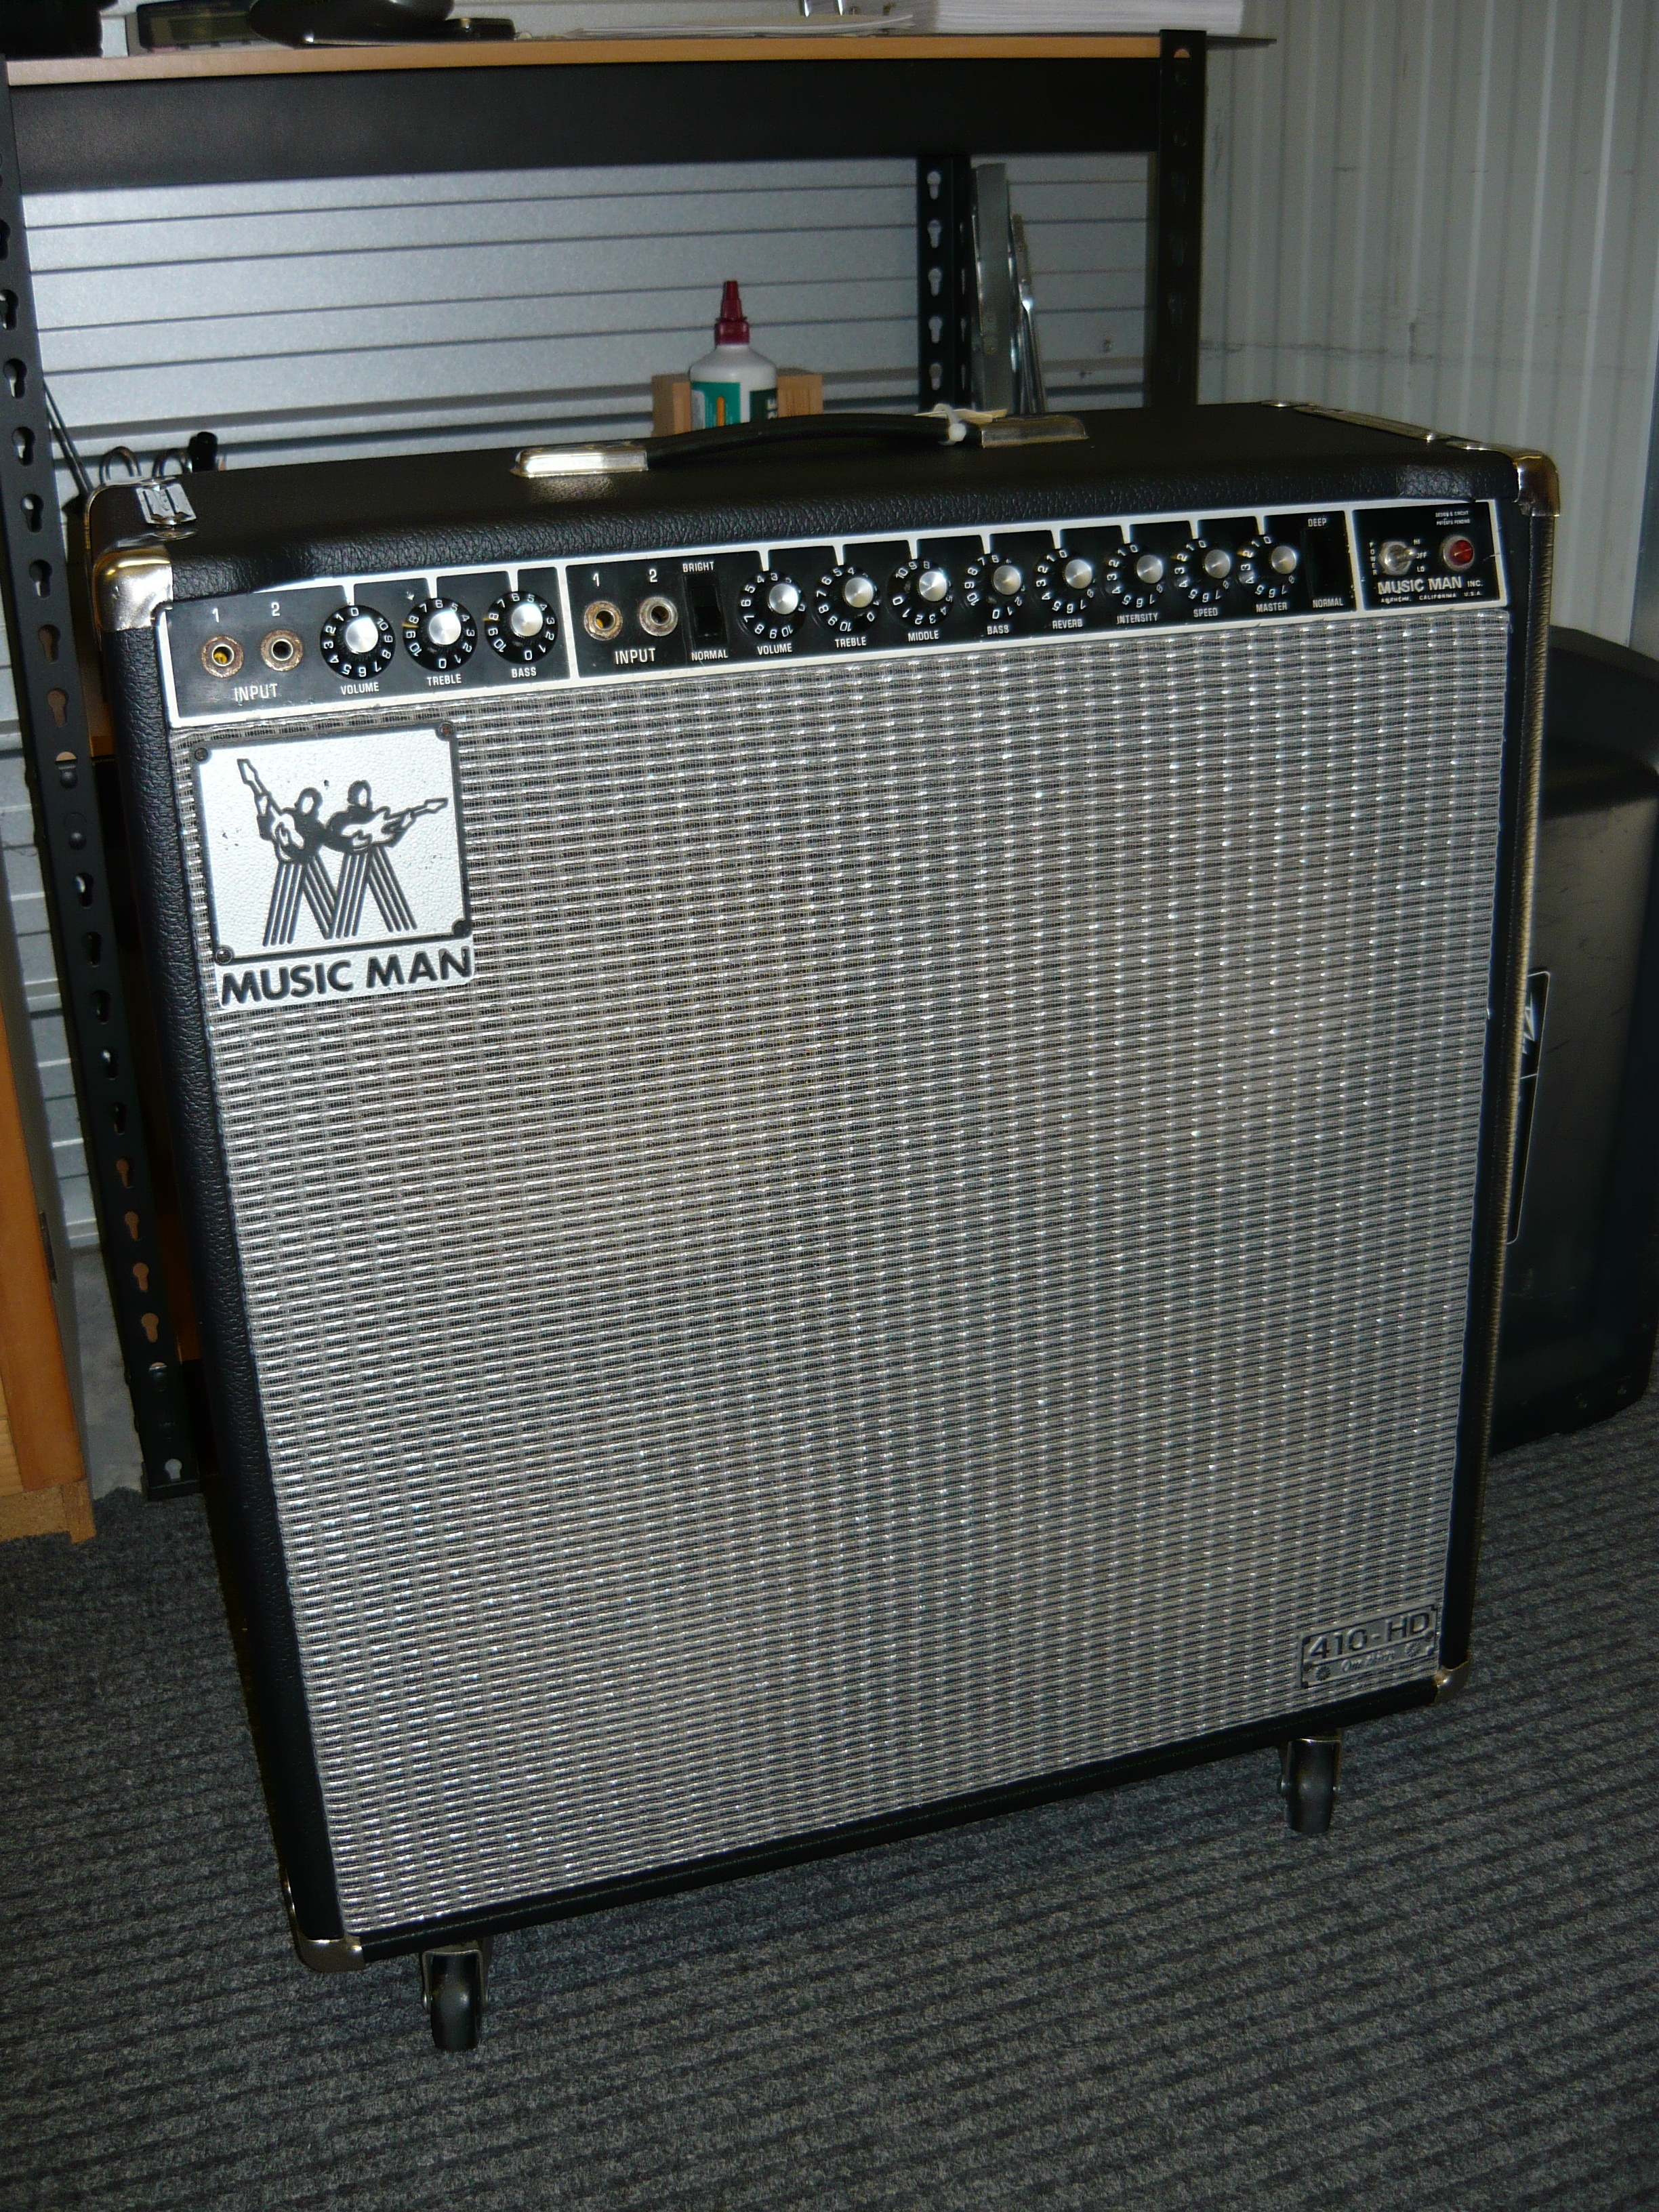 Musicman Bass Amp it Also Makes a Good Bass Amp